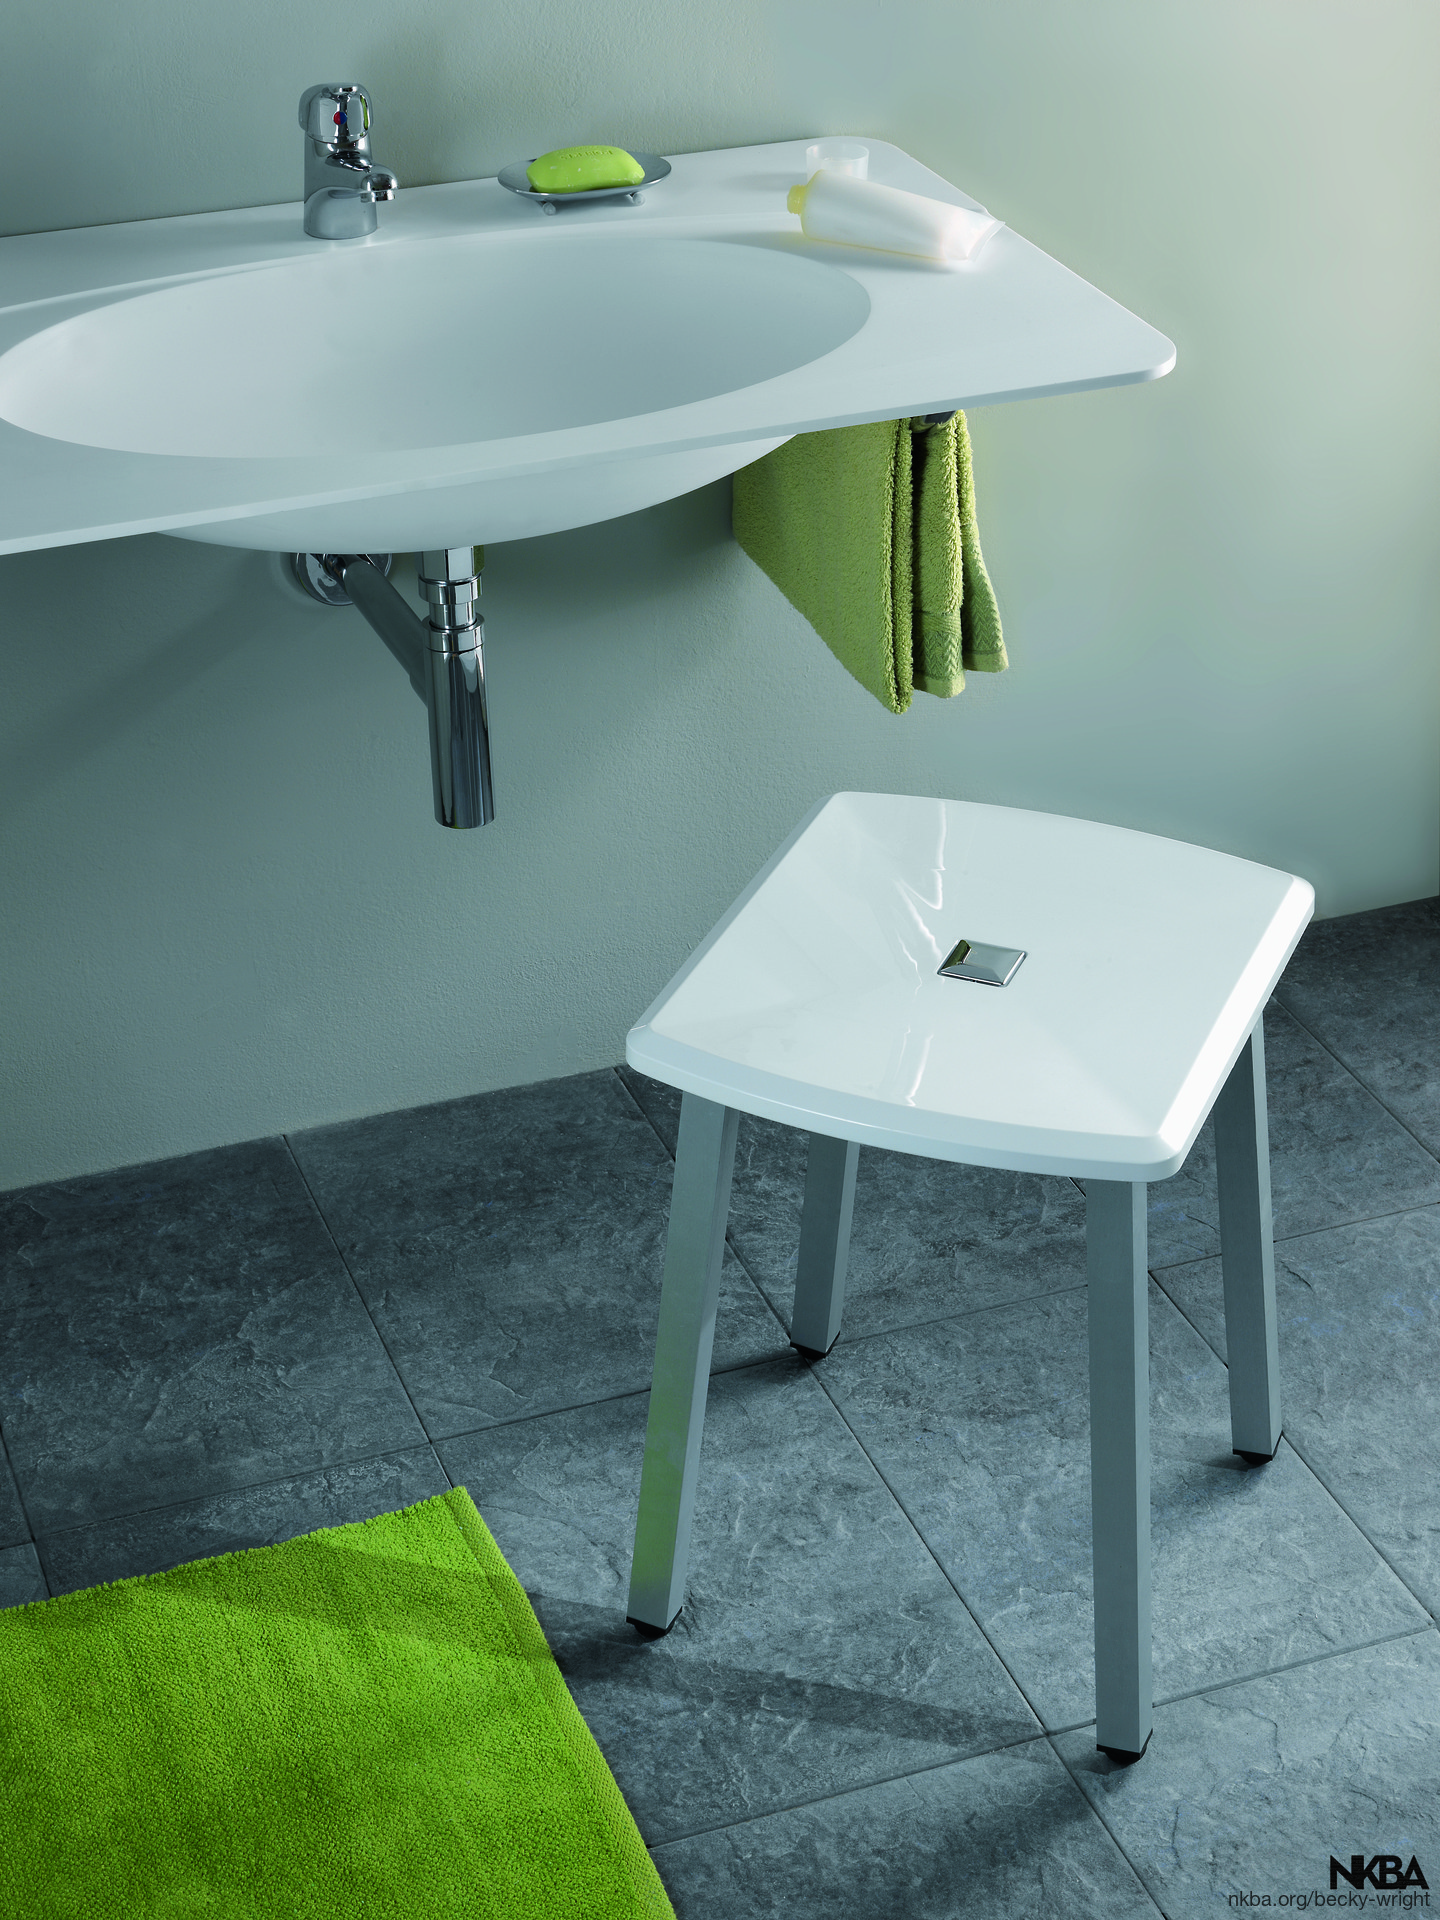 Sink with added arm space and stool - NKBA